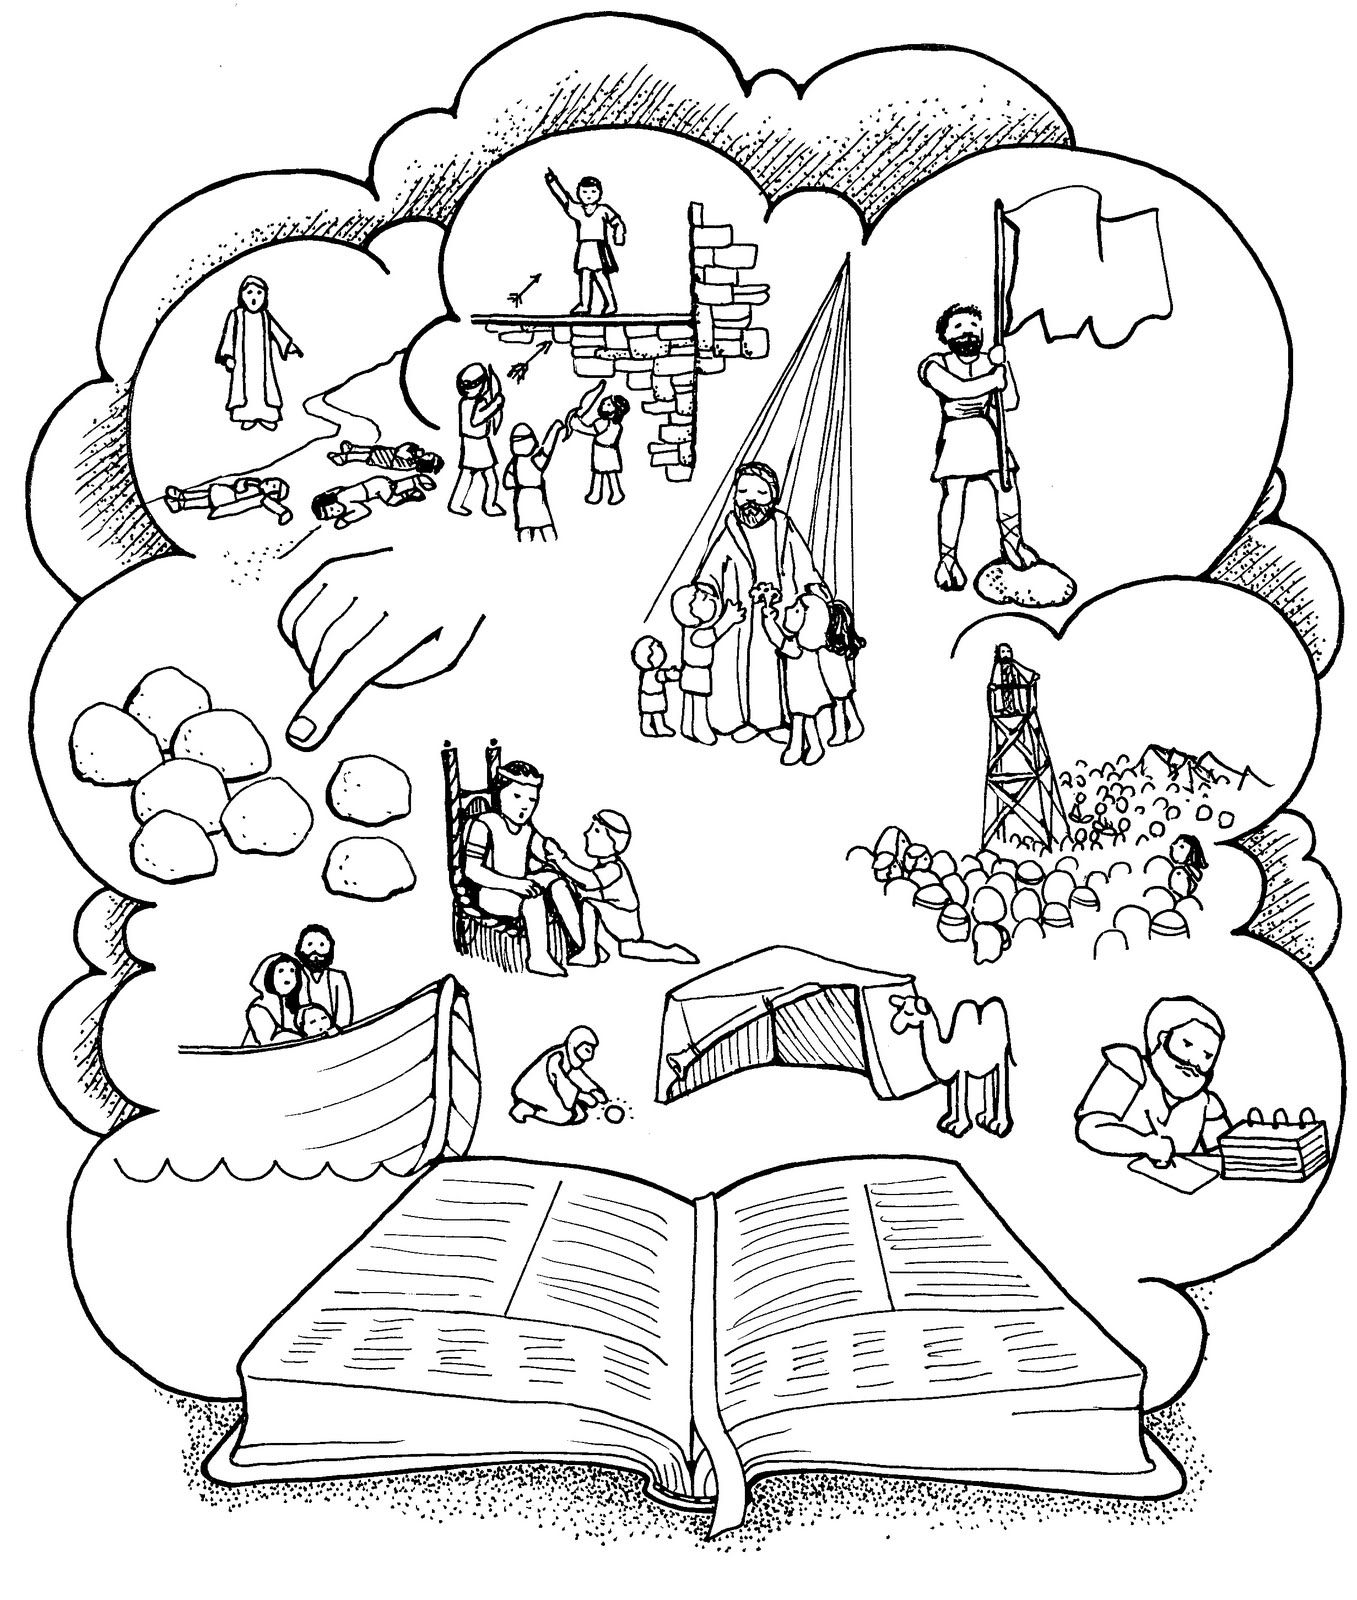 clipart of the book of mormon - photo #36